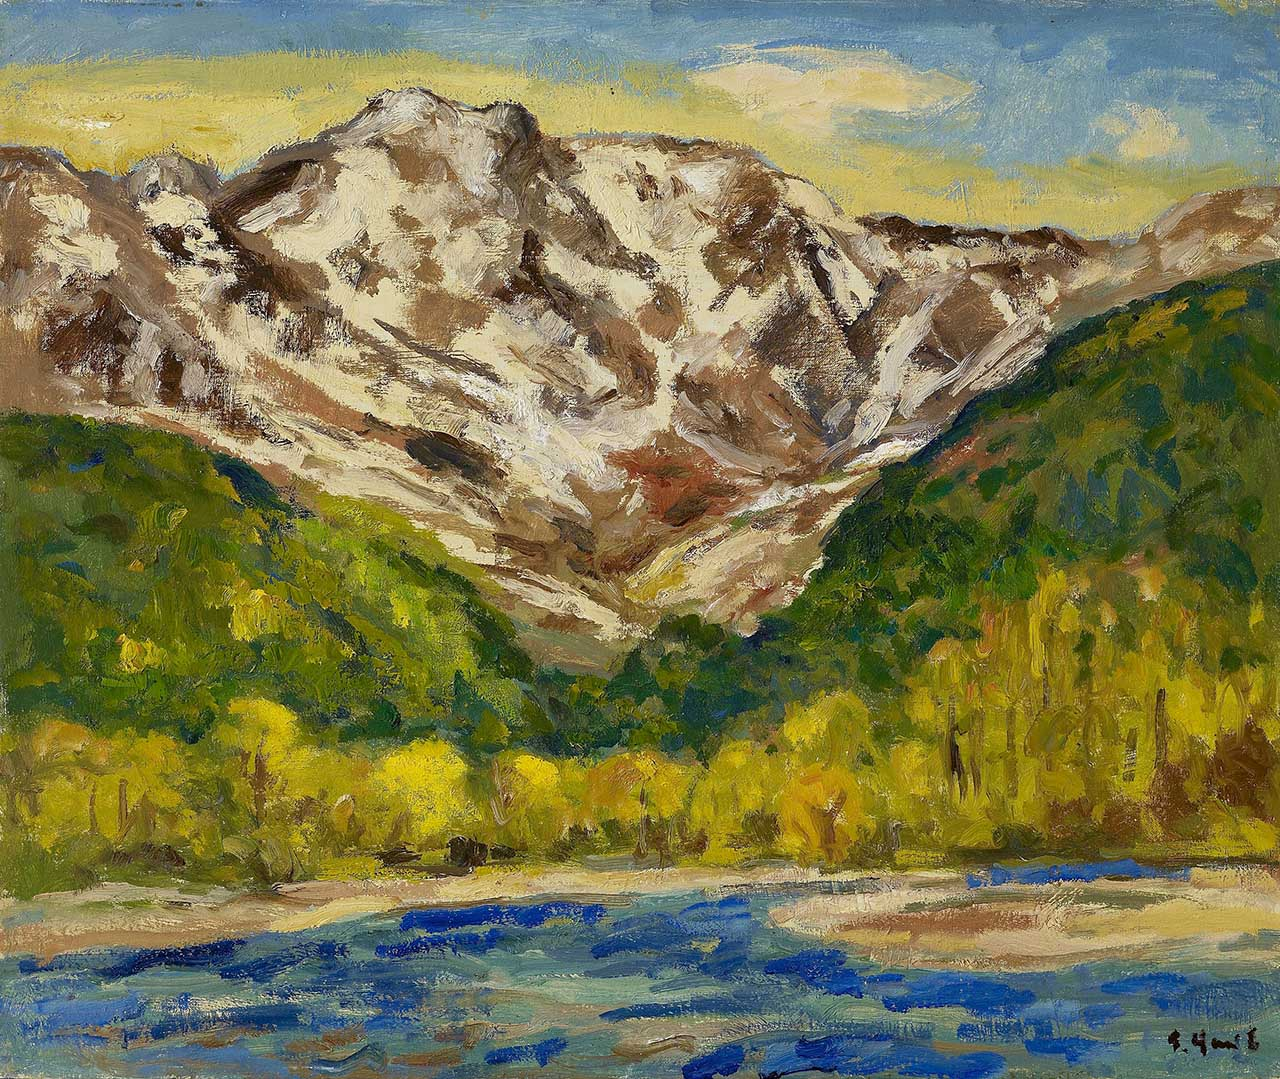 Snowy Mountain (Foothill of White Horse Mountain) Oil on canvas 60.7x72.5 cm